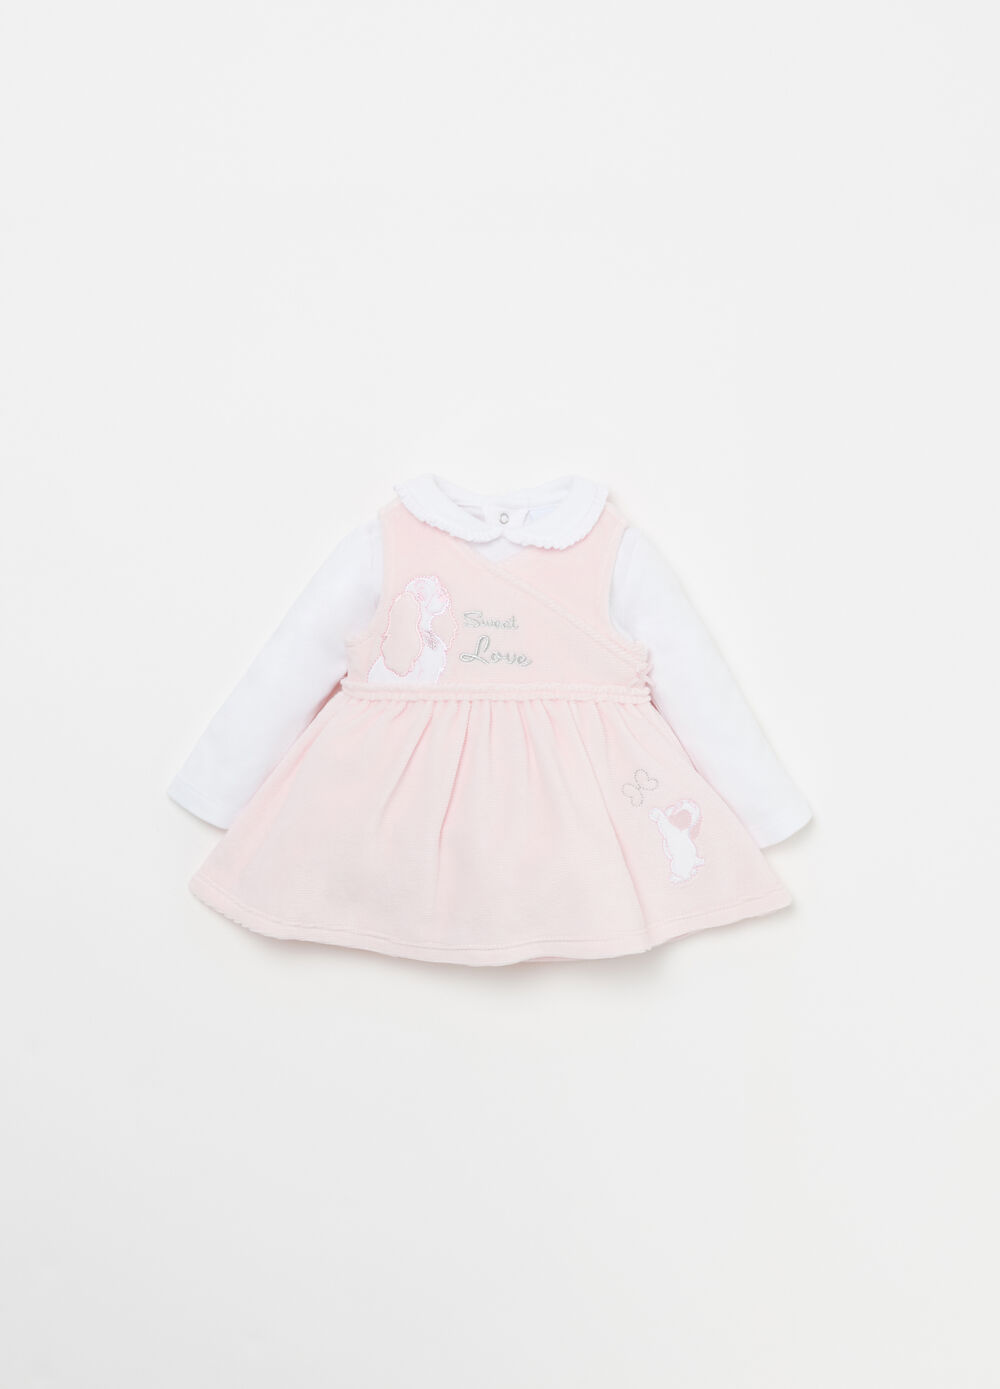 Disney Baby T-shirt and dress outfit